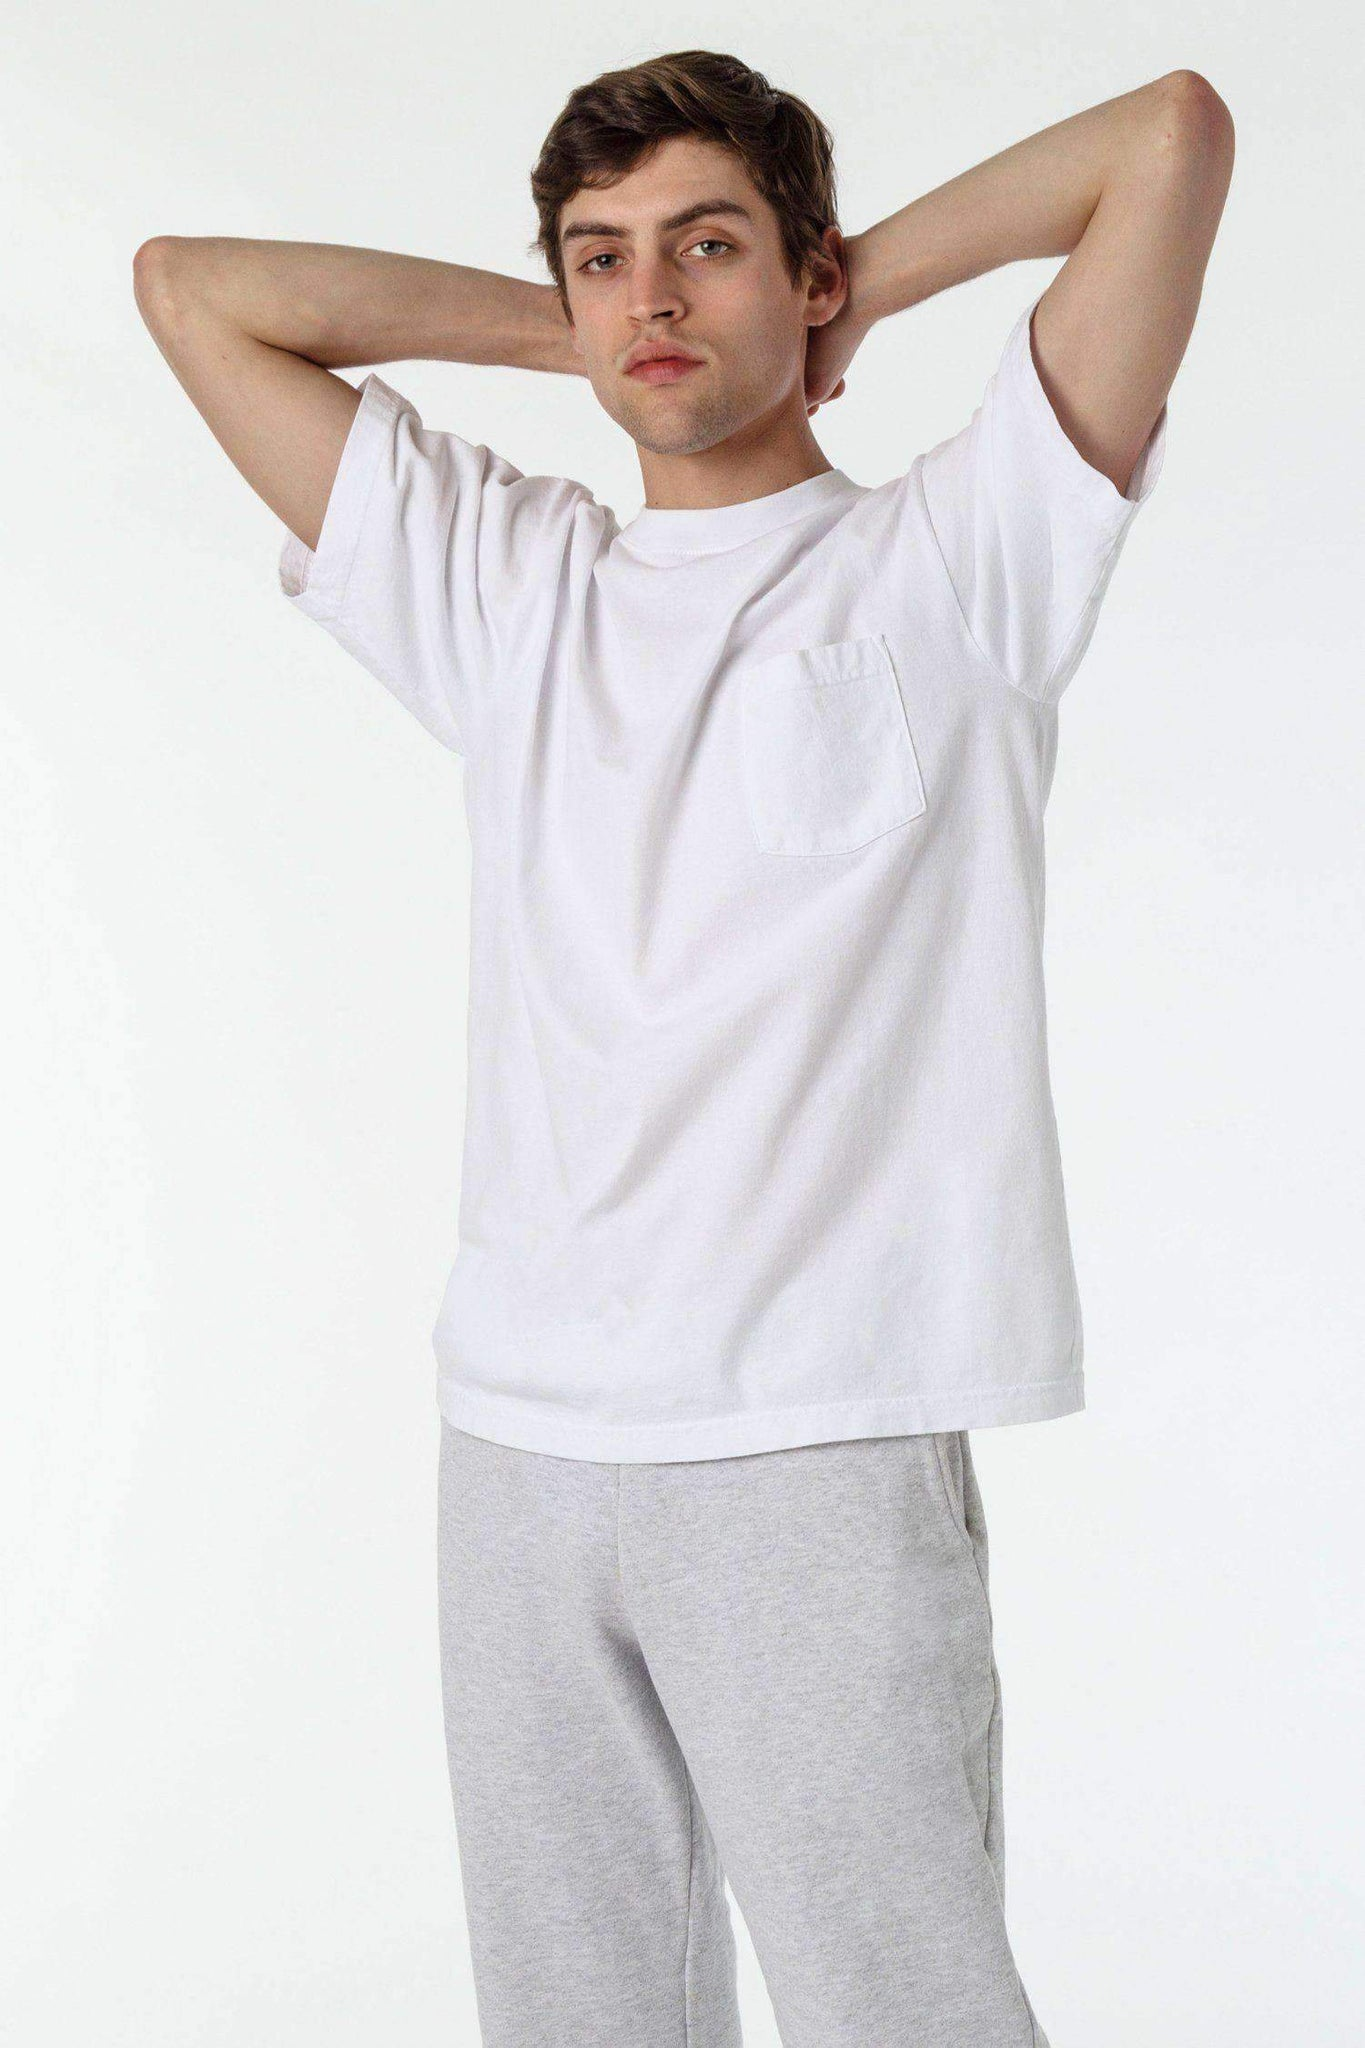 1809GD - Short Sleeve Garment Dye Pocket T-Shirt T-Shirt Los Angeles Apparel White XS